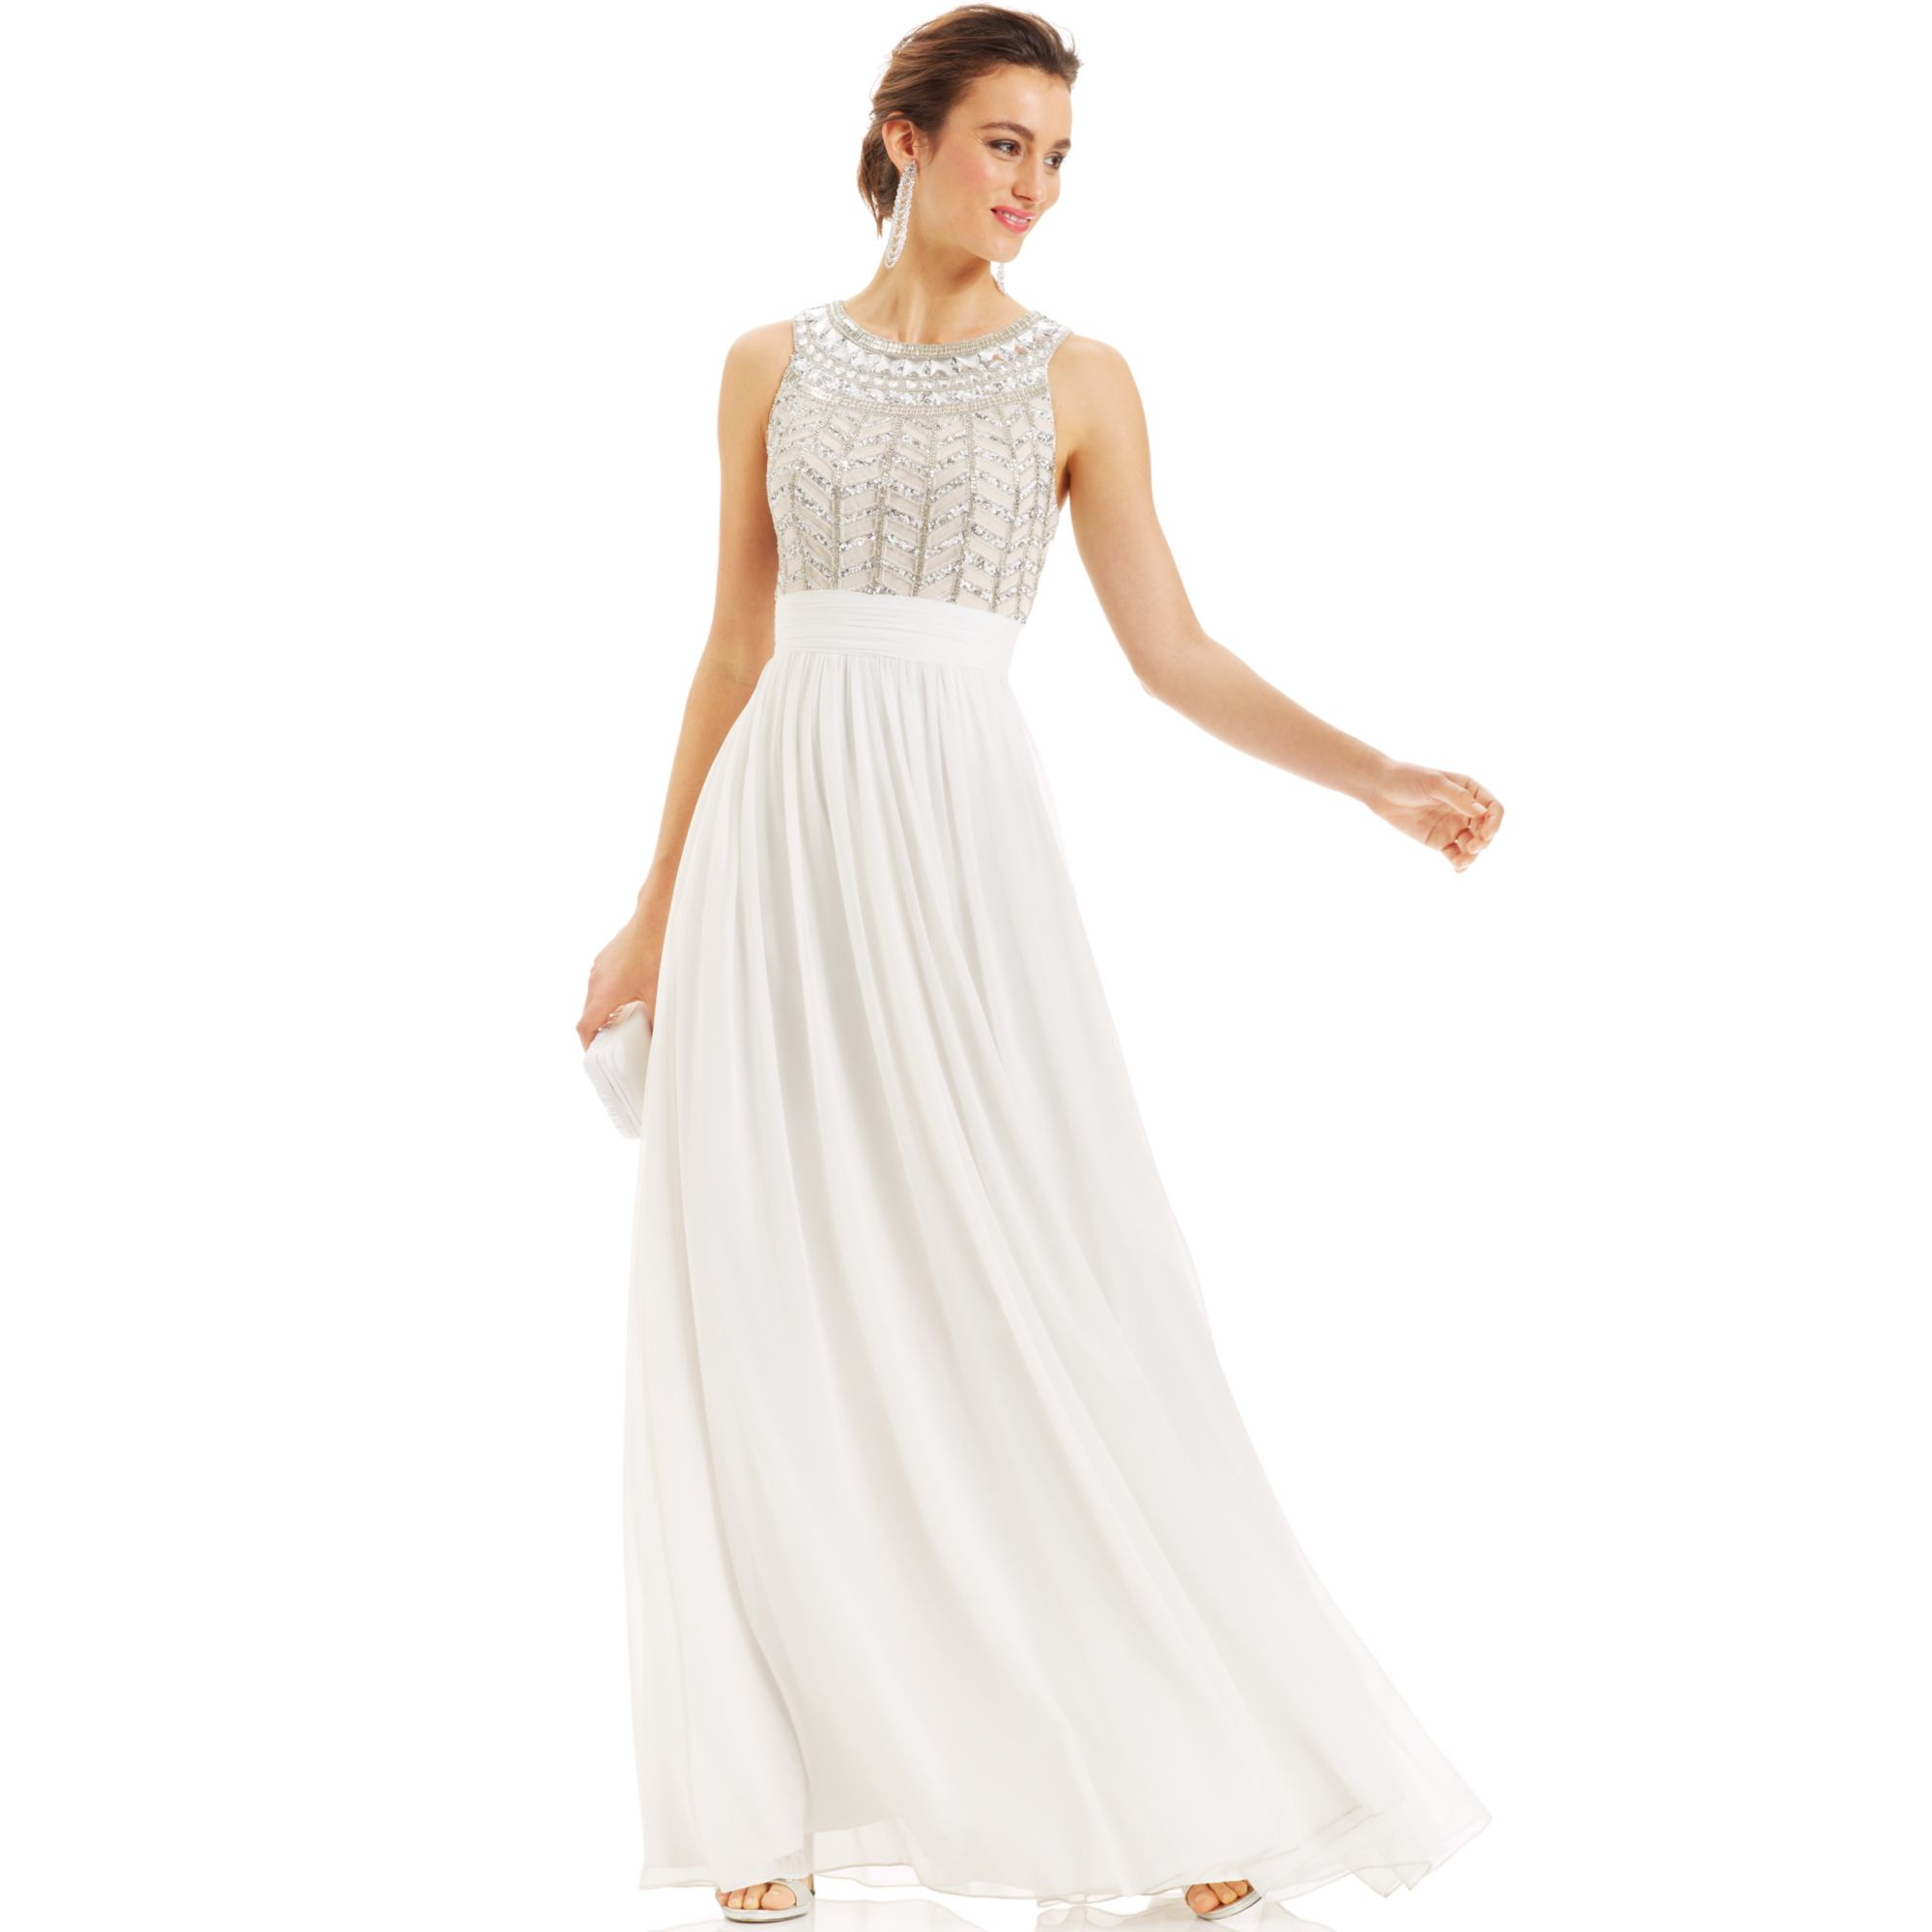 Lyst - Js Collections Dress Sleeveless Beaded Empirewaist Gown in White